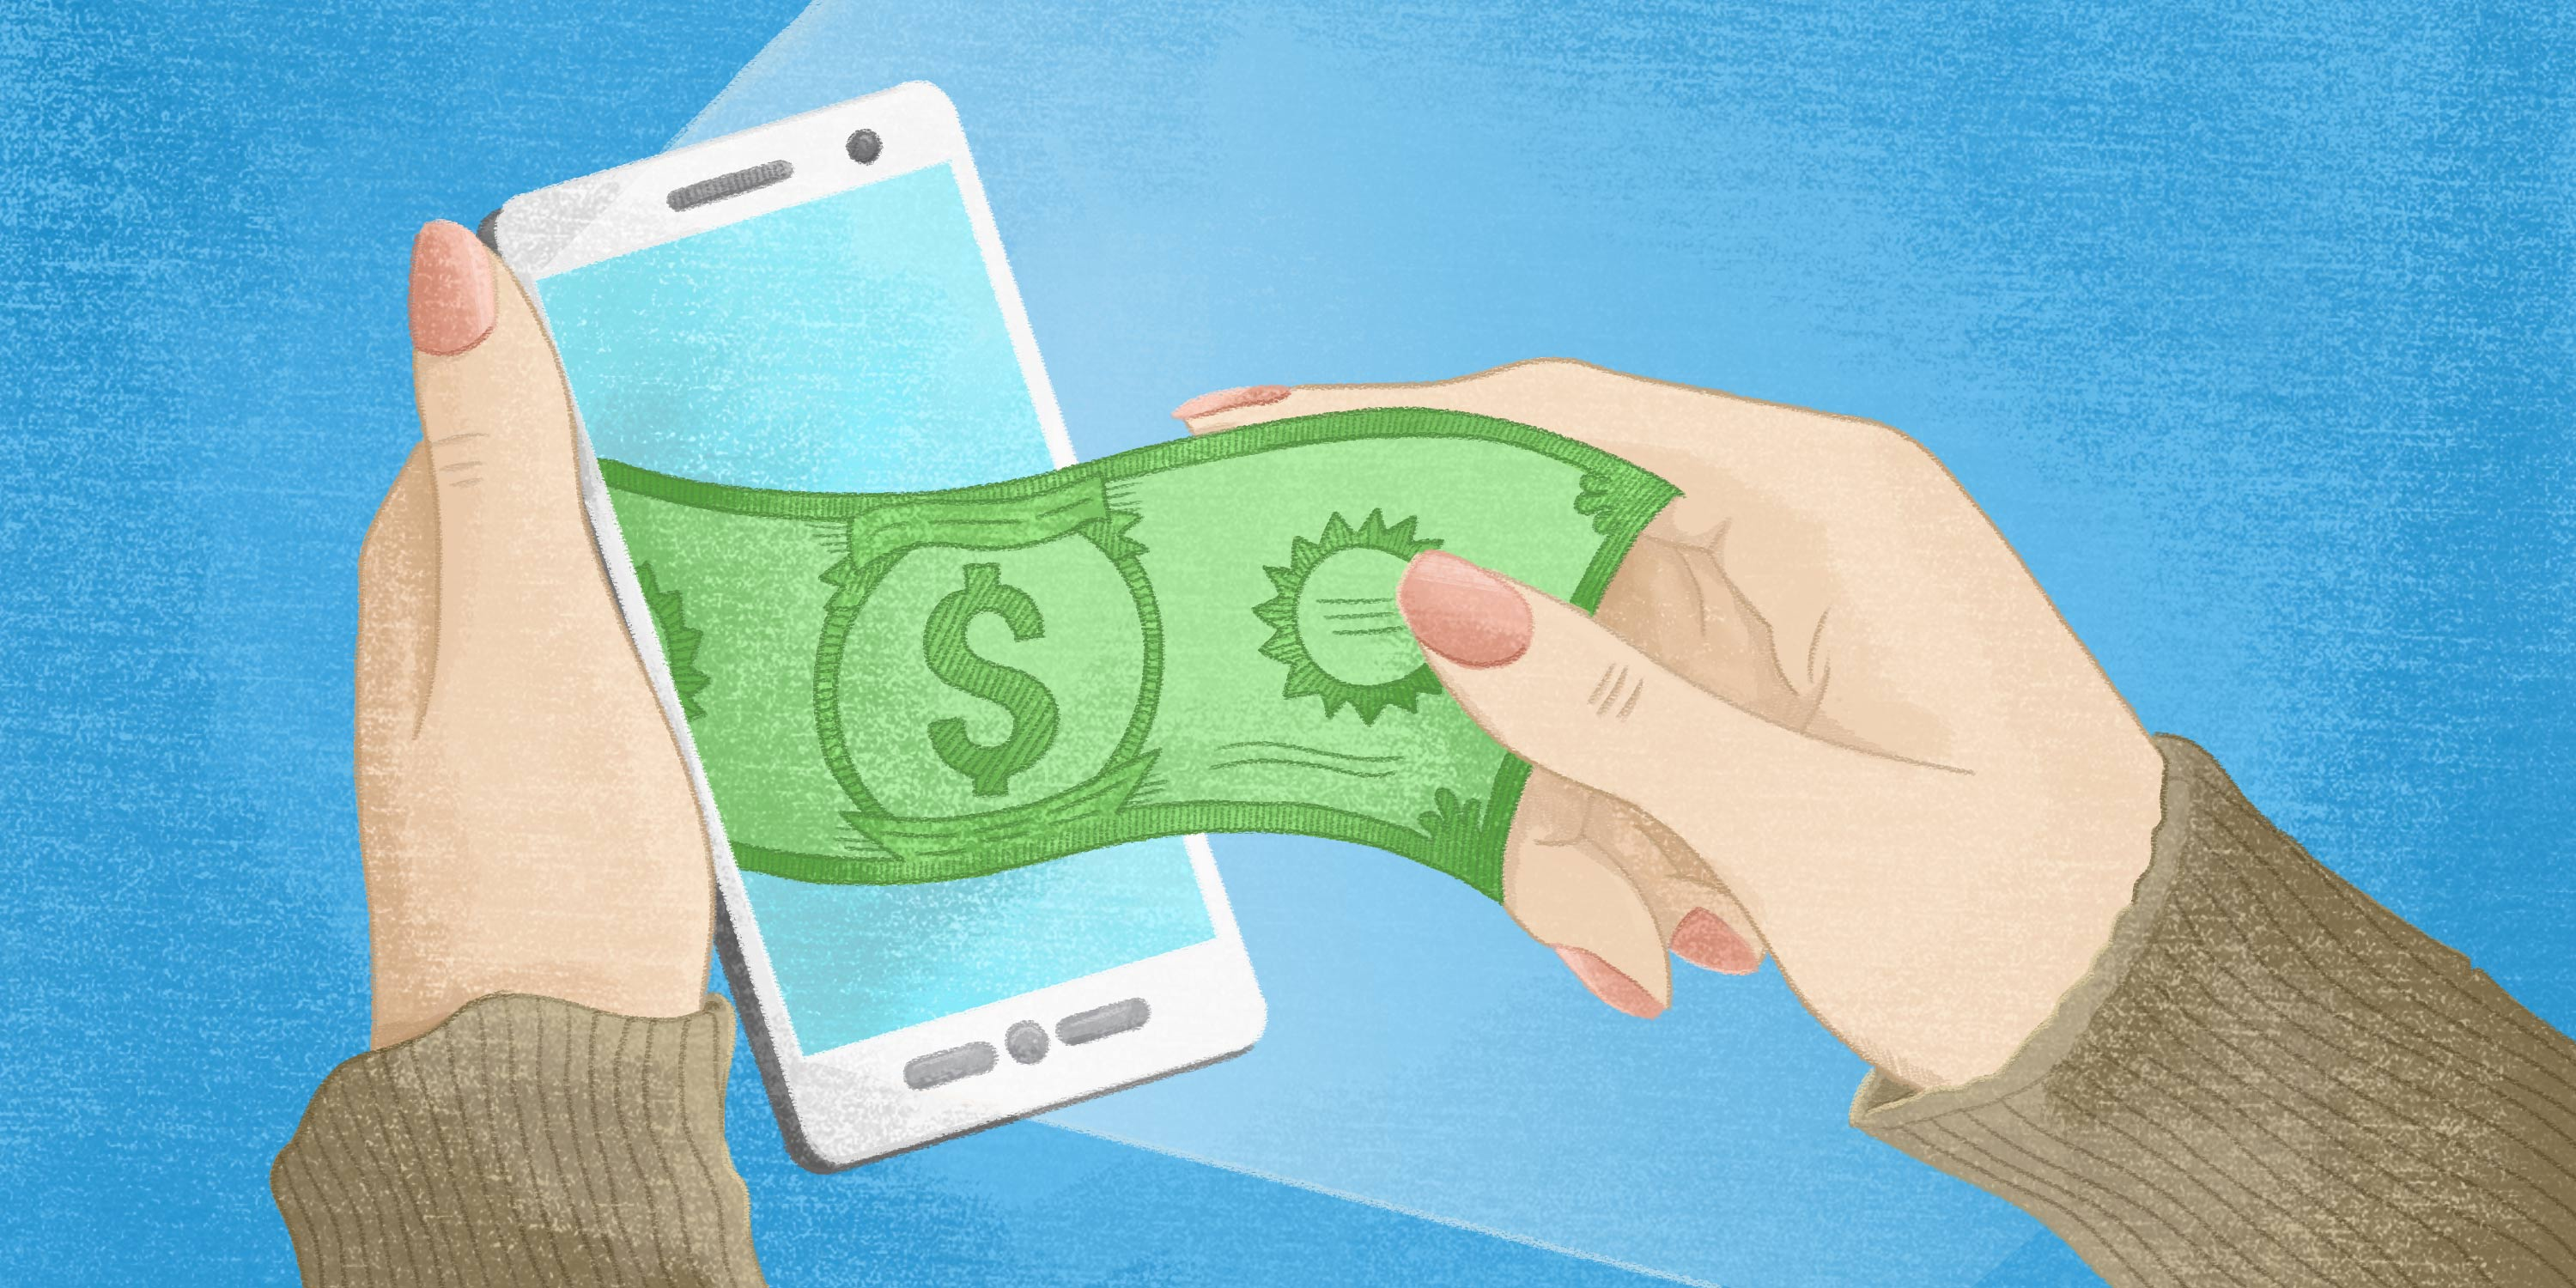 B2B payments coming out of a smart phone screen